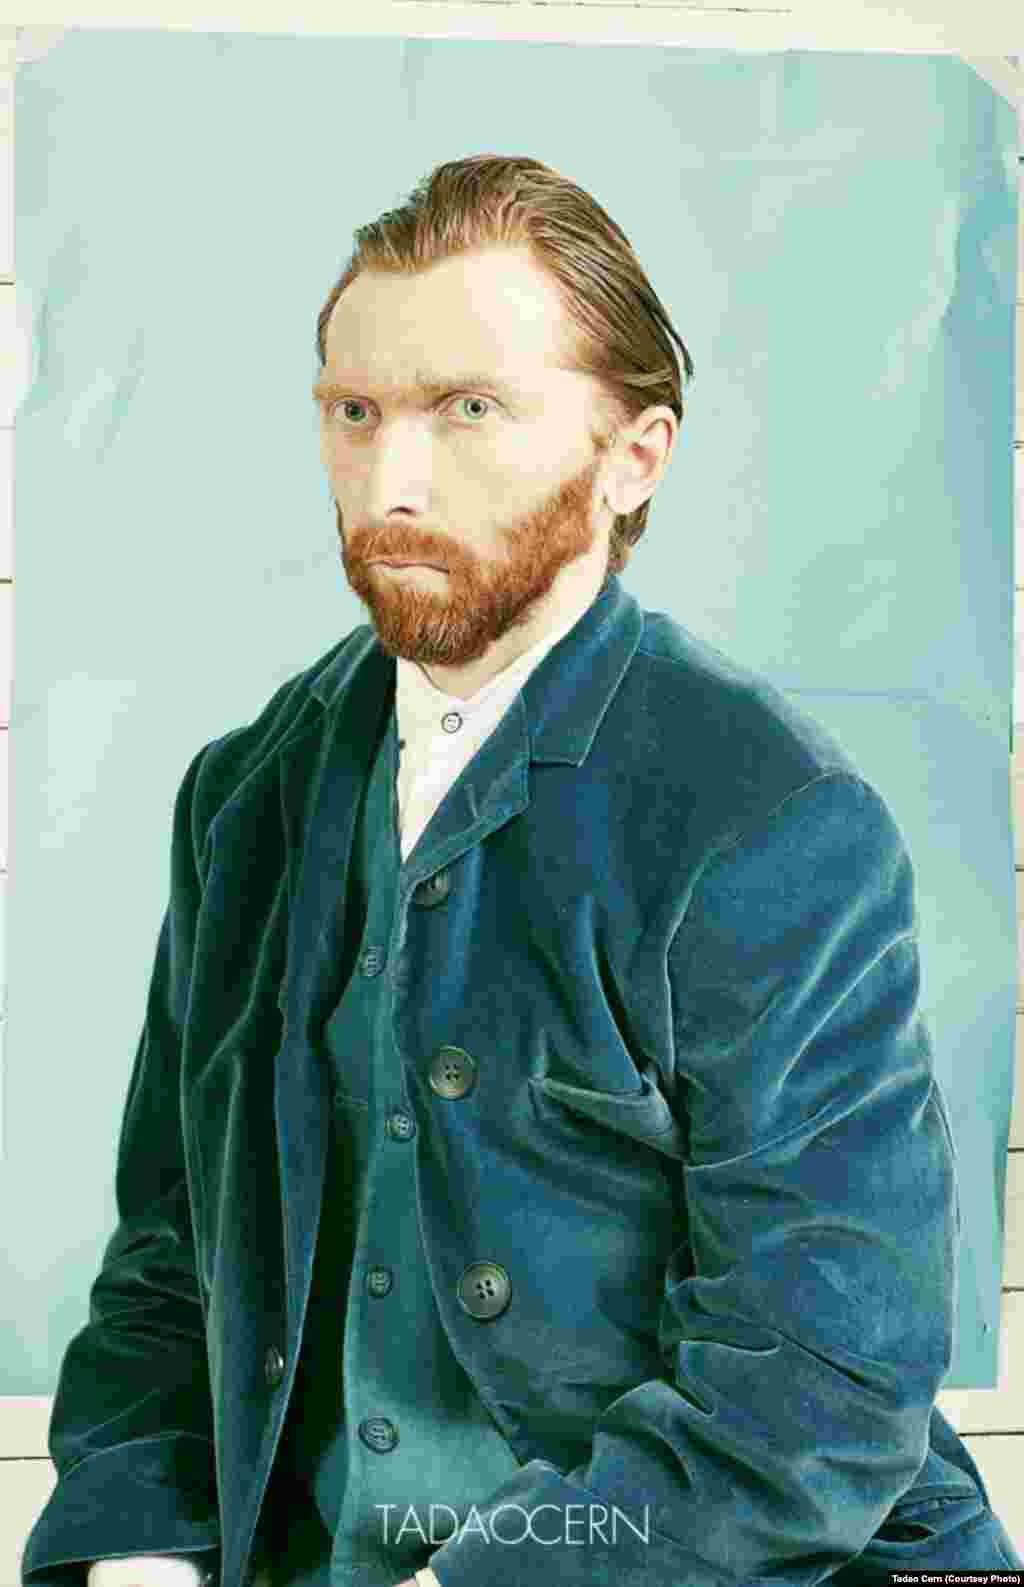 Photographer Tadao Cern used a friend as a model for this photographic re-creation of Van Gogh's masterpiece. He asked a stylist to find period clothing and used a bit of digital retouching to complete the effect.